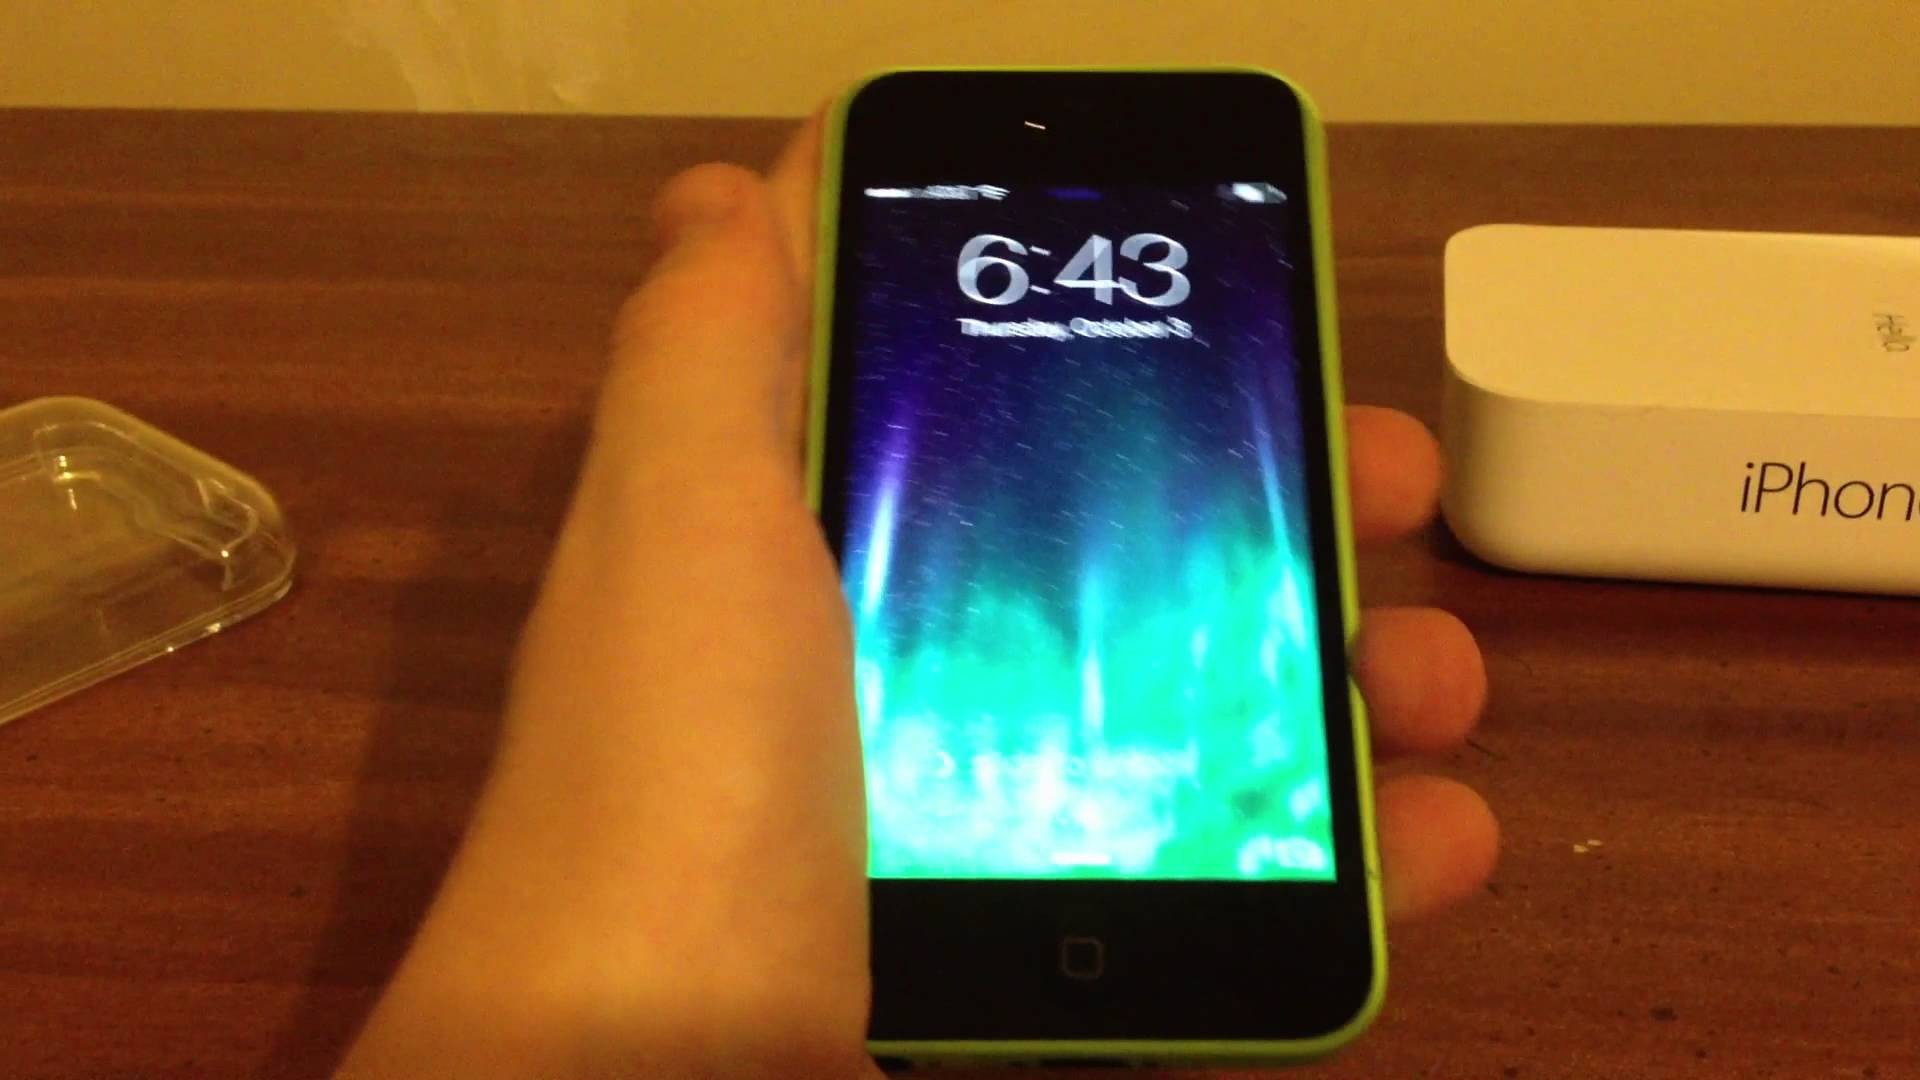 IPHONE 5C UNBOXING (GREEN) - YouTube